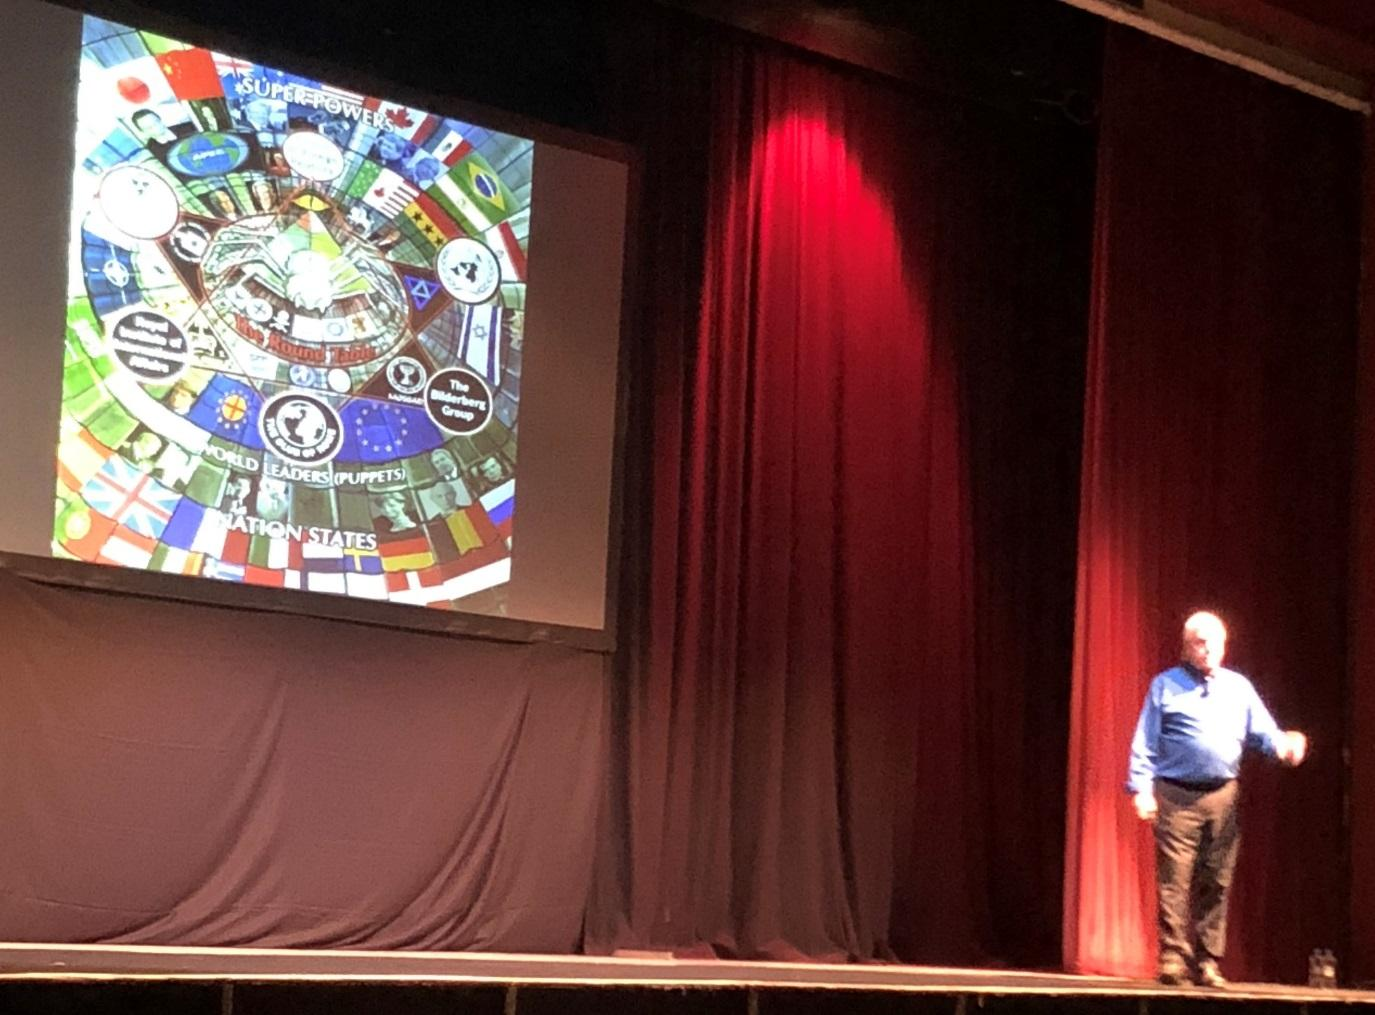 A photo taken at the 2018 David Icke tour. David Icke stands on a stage in Southport wearing a blue shirt, black trousers and a pair of brown boots. The screen at the back of the stage shows a complicated web of many organisations connected with conspiracy theories and an illuminati pyramid in the centre.